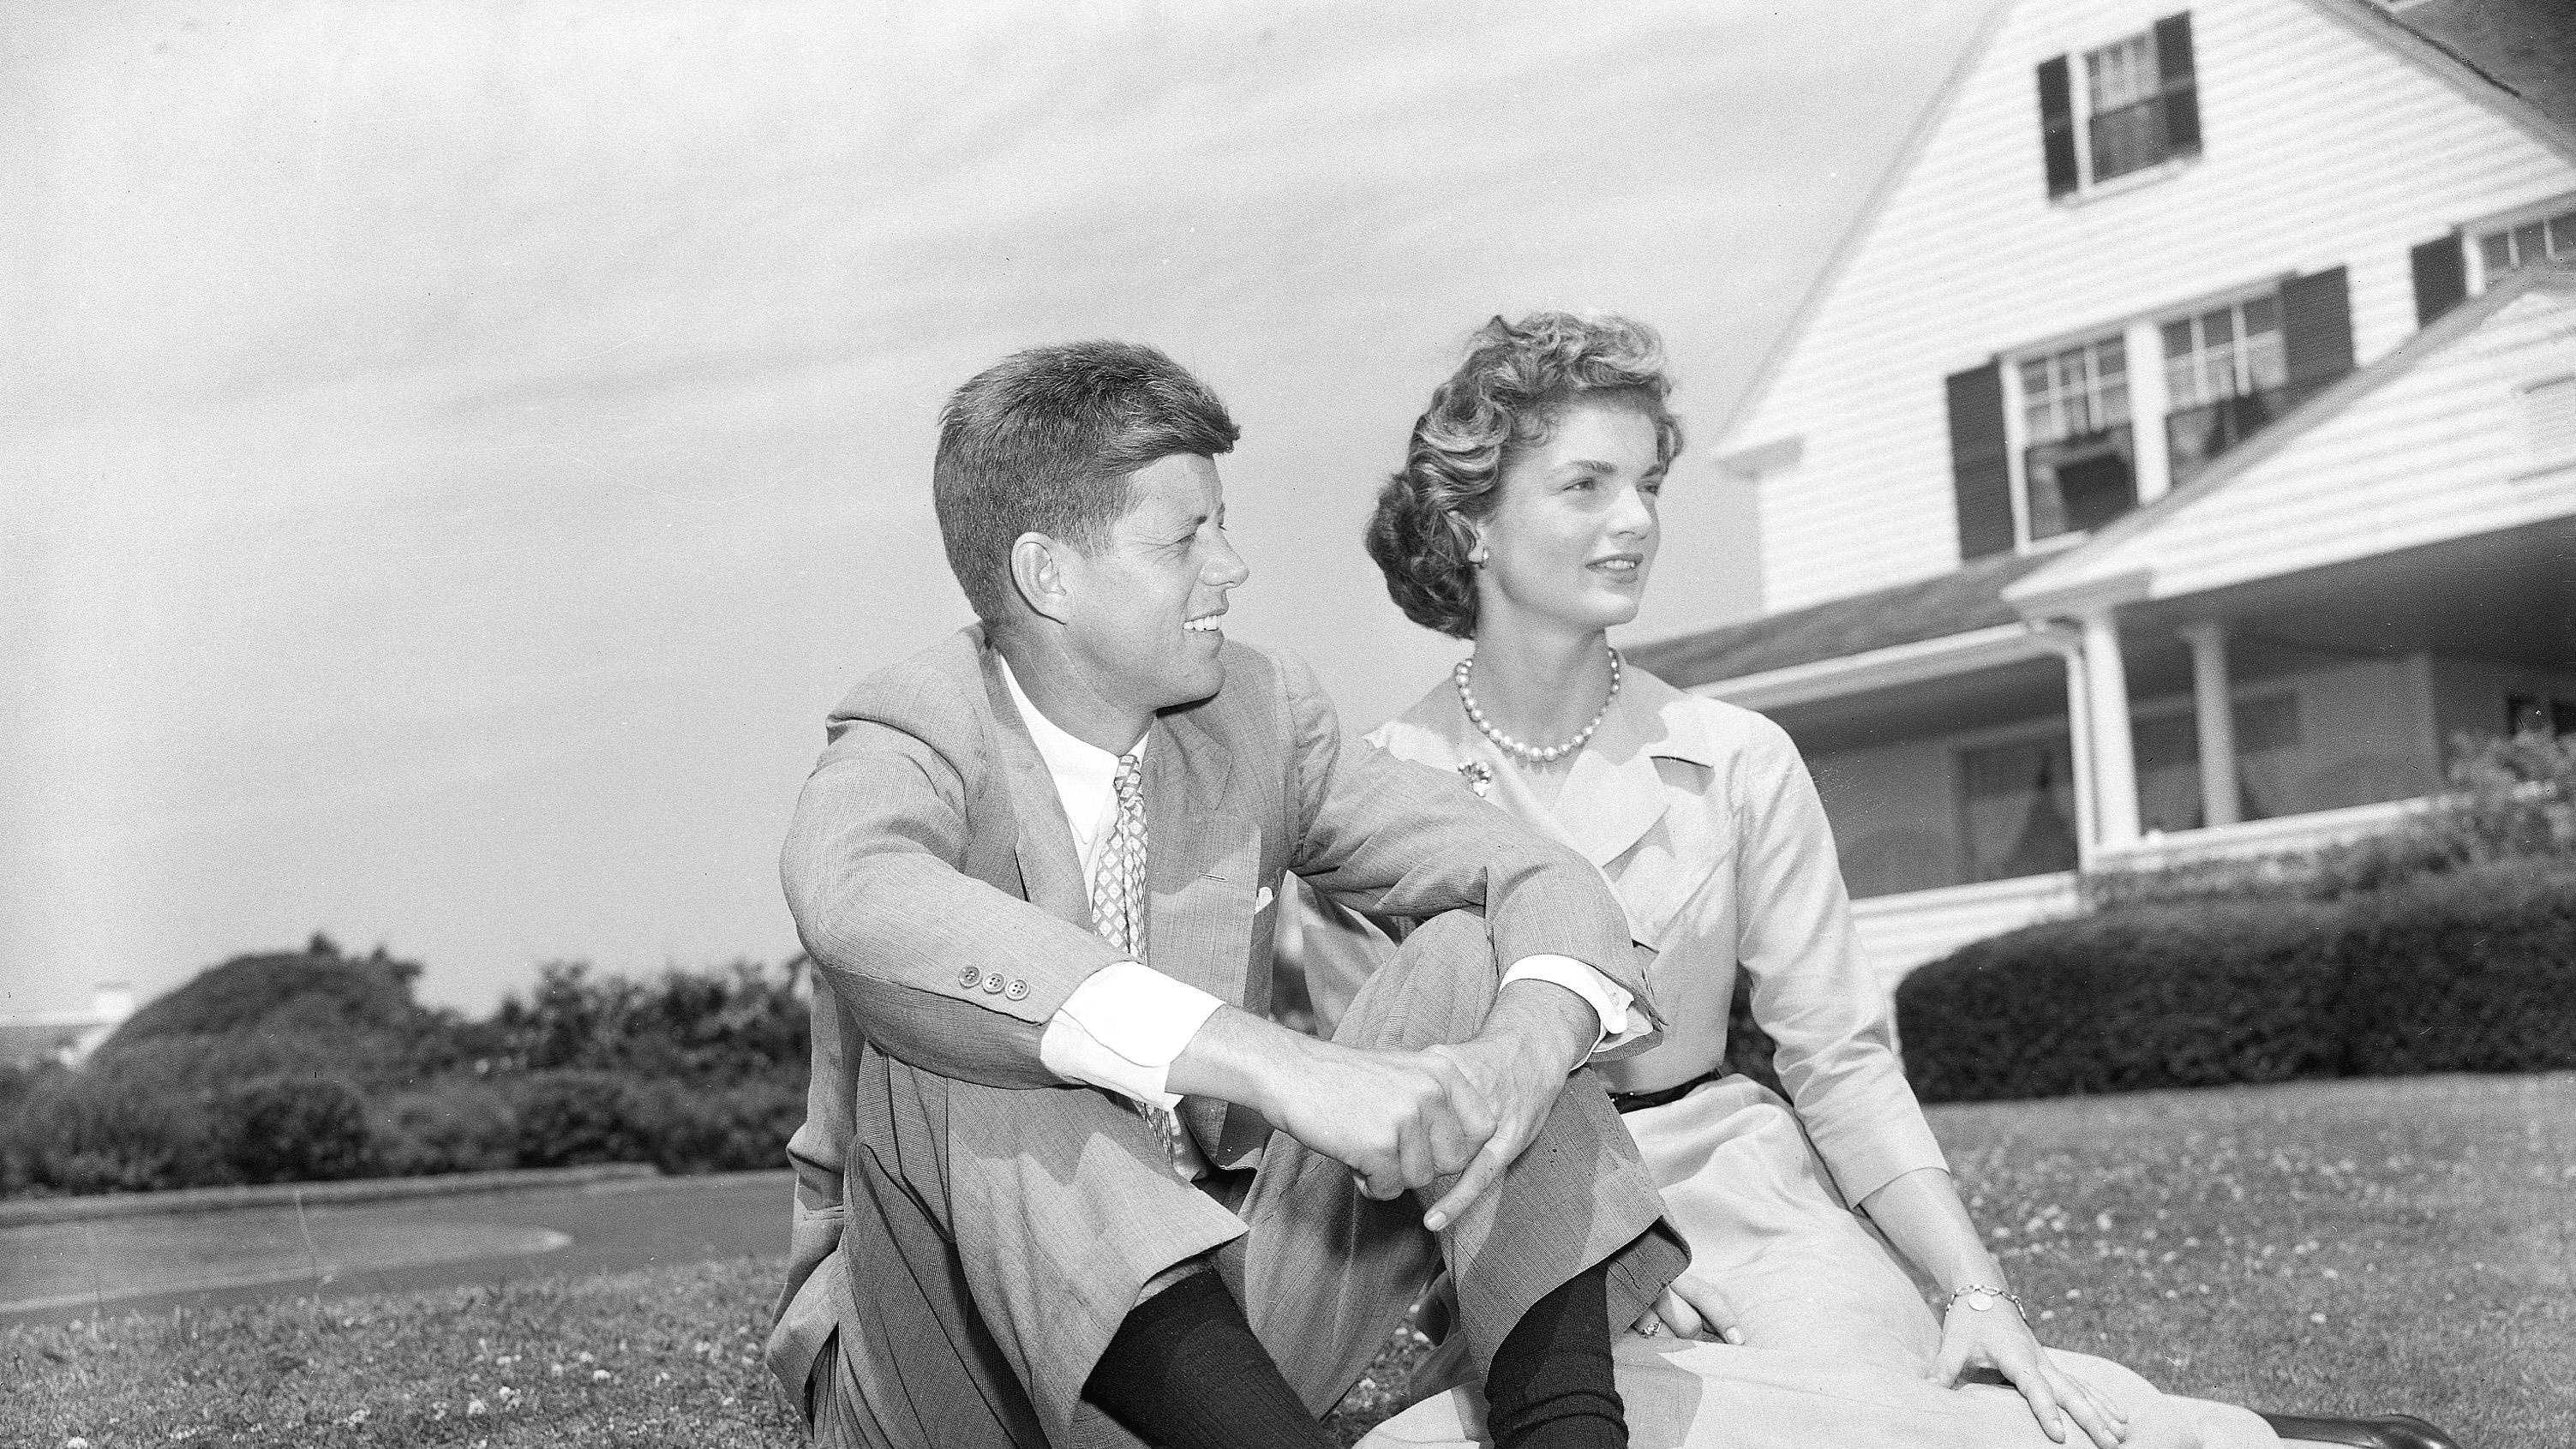 Sen. John F. Kennedy, D-Mass., and his fiancee Jacqueline Bouvier, 23, pose on the lawn of the Kennedy residence during their weekend visit at Hyannis, Ma., on June 27, 1953.